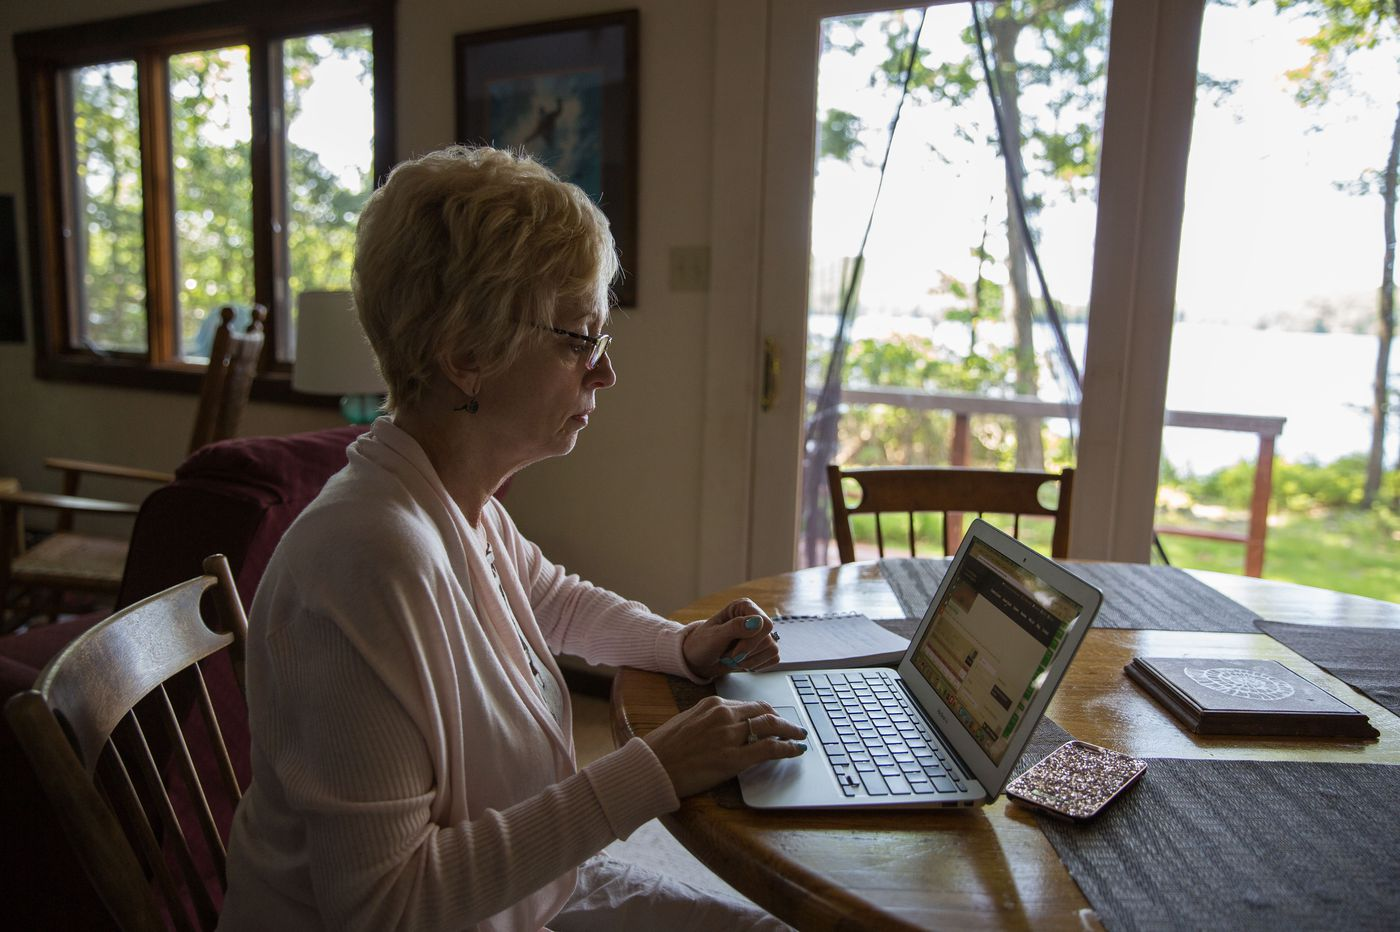 Poconos property manager is getting a second chance to fight for her job